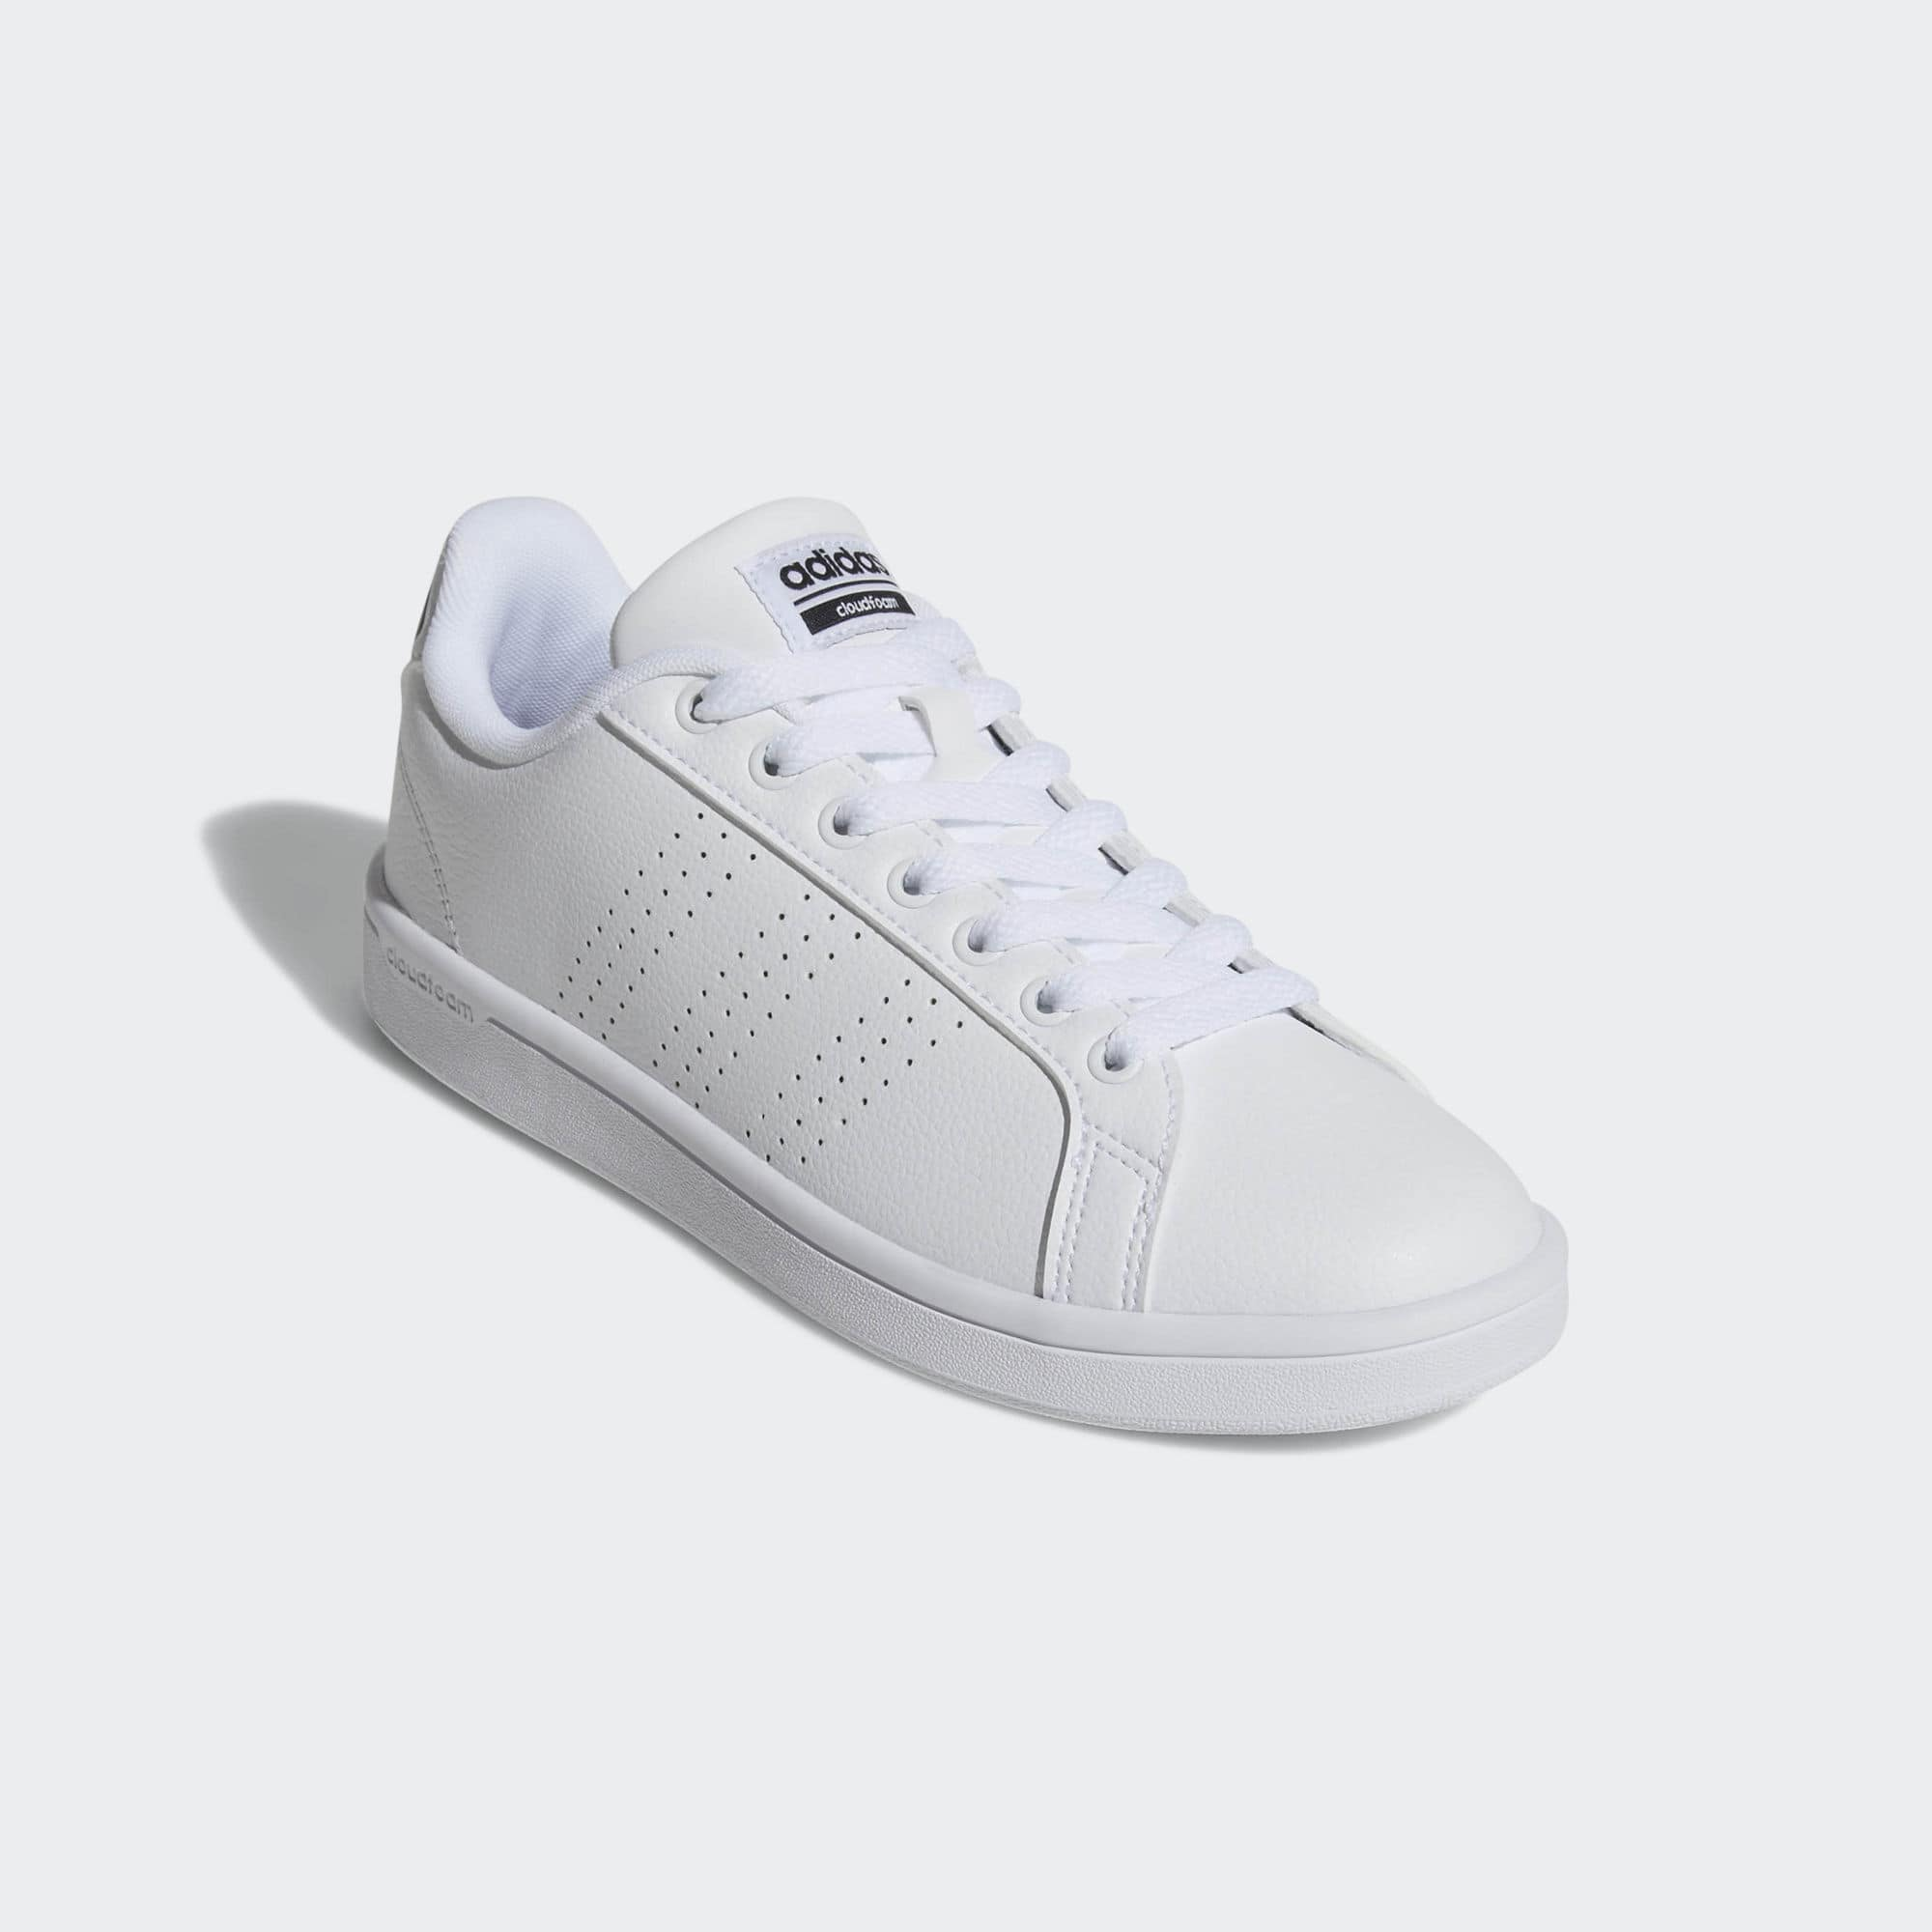 Adidas Cloudfoam Advantage Clean Shoes Women's White + Free